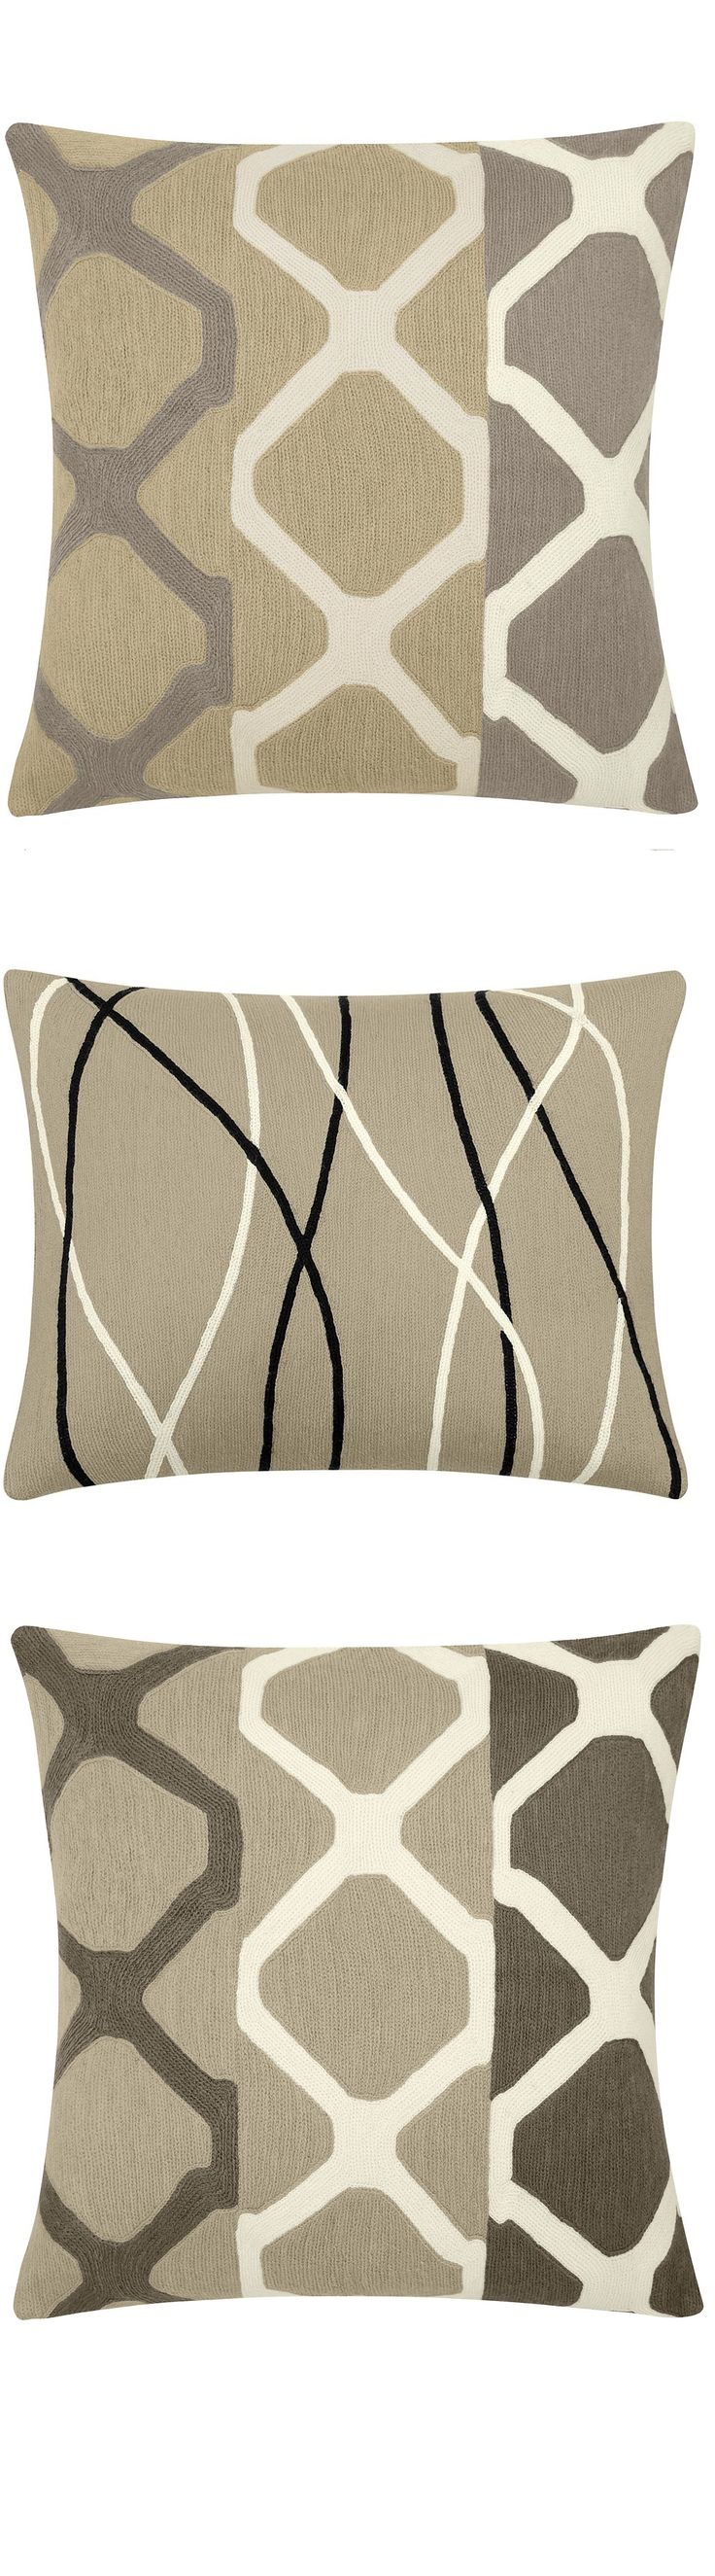 17 Best images about Gray Pillows on Pinterest Sofa pillows, Gray and Throw pillows